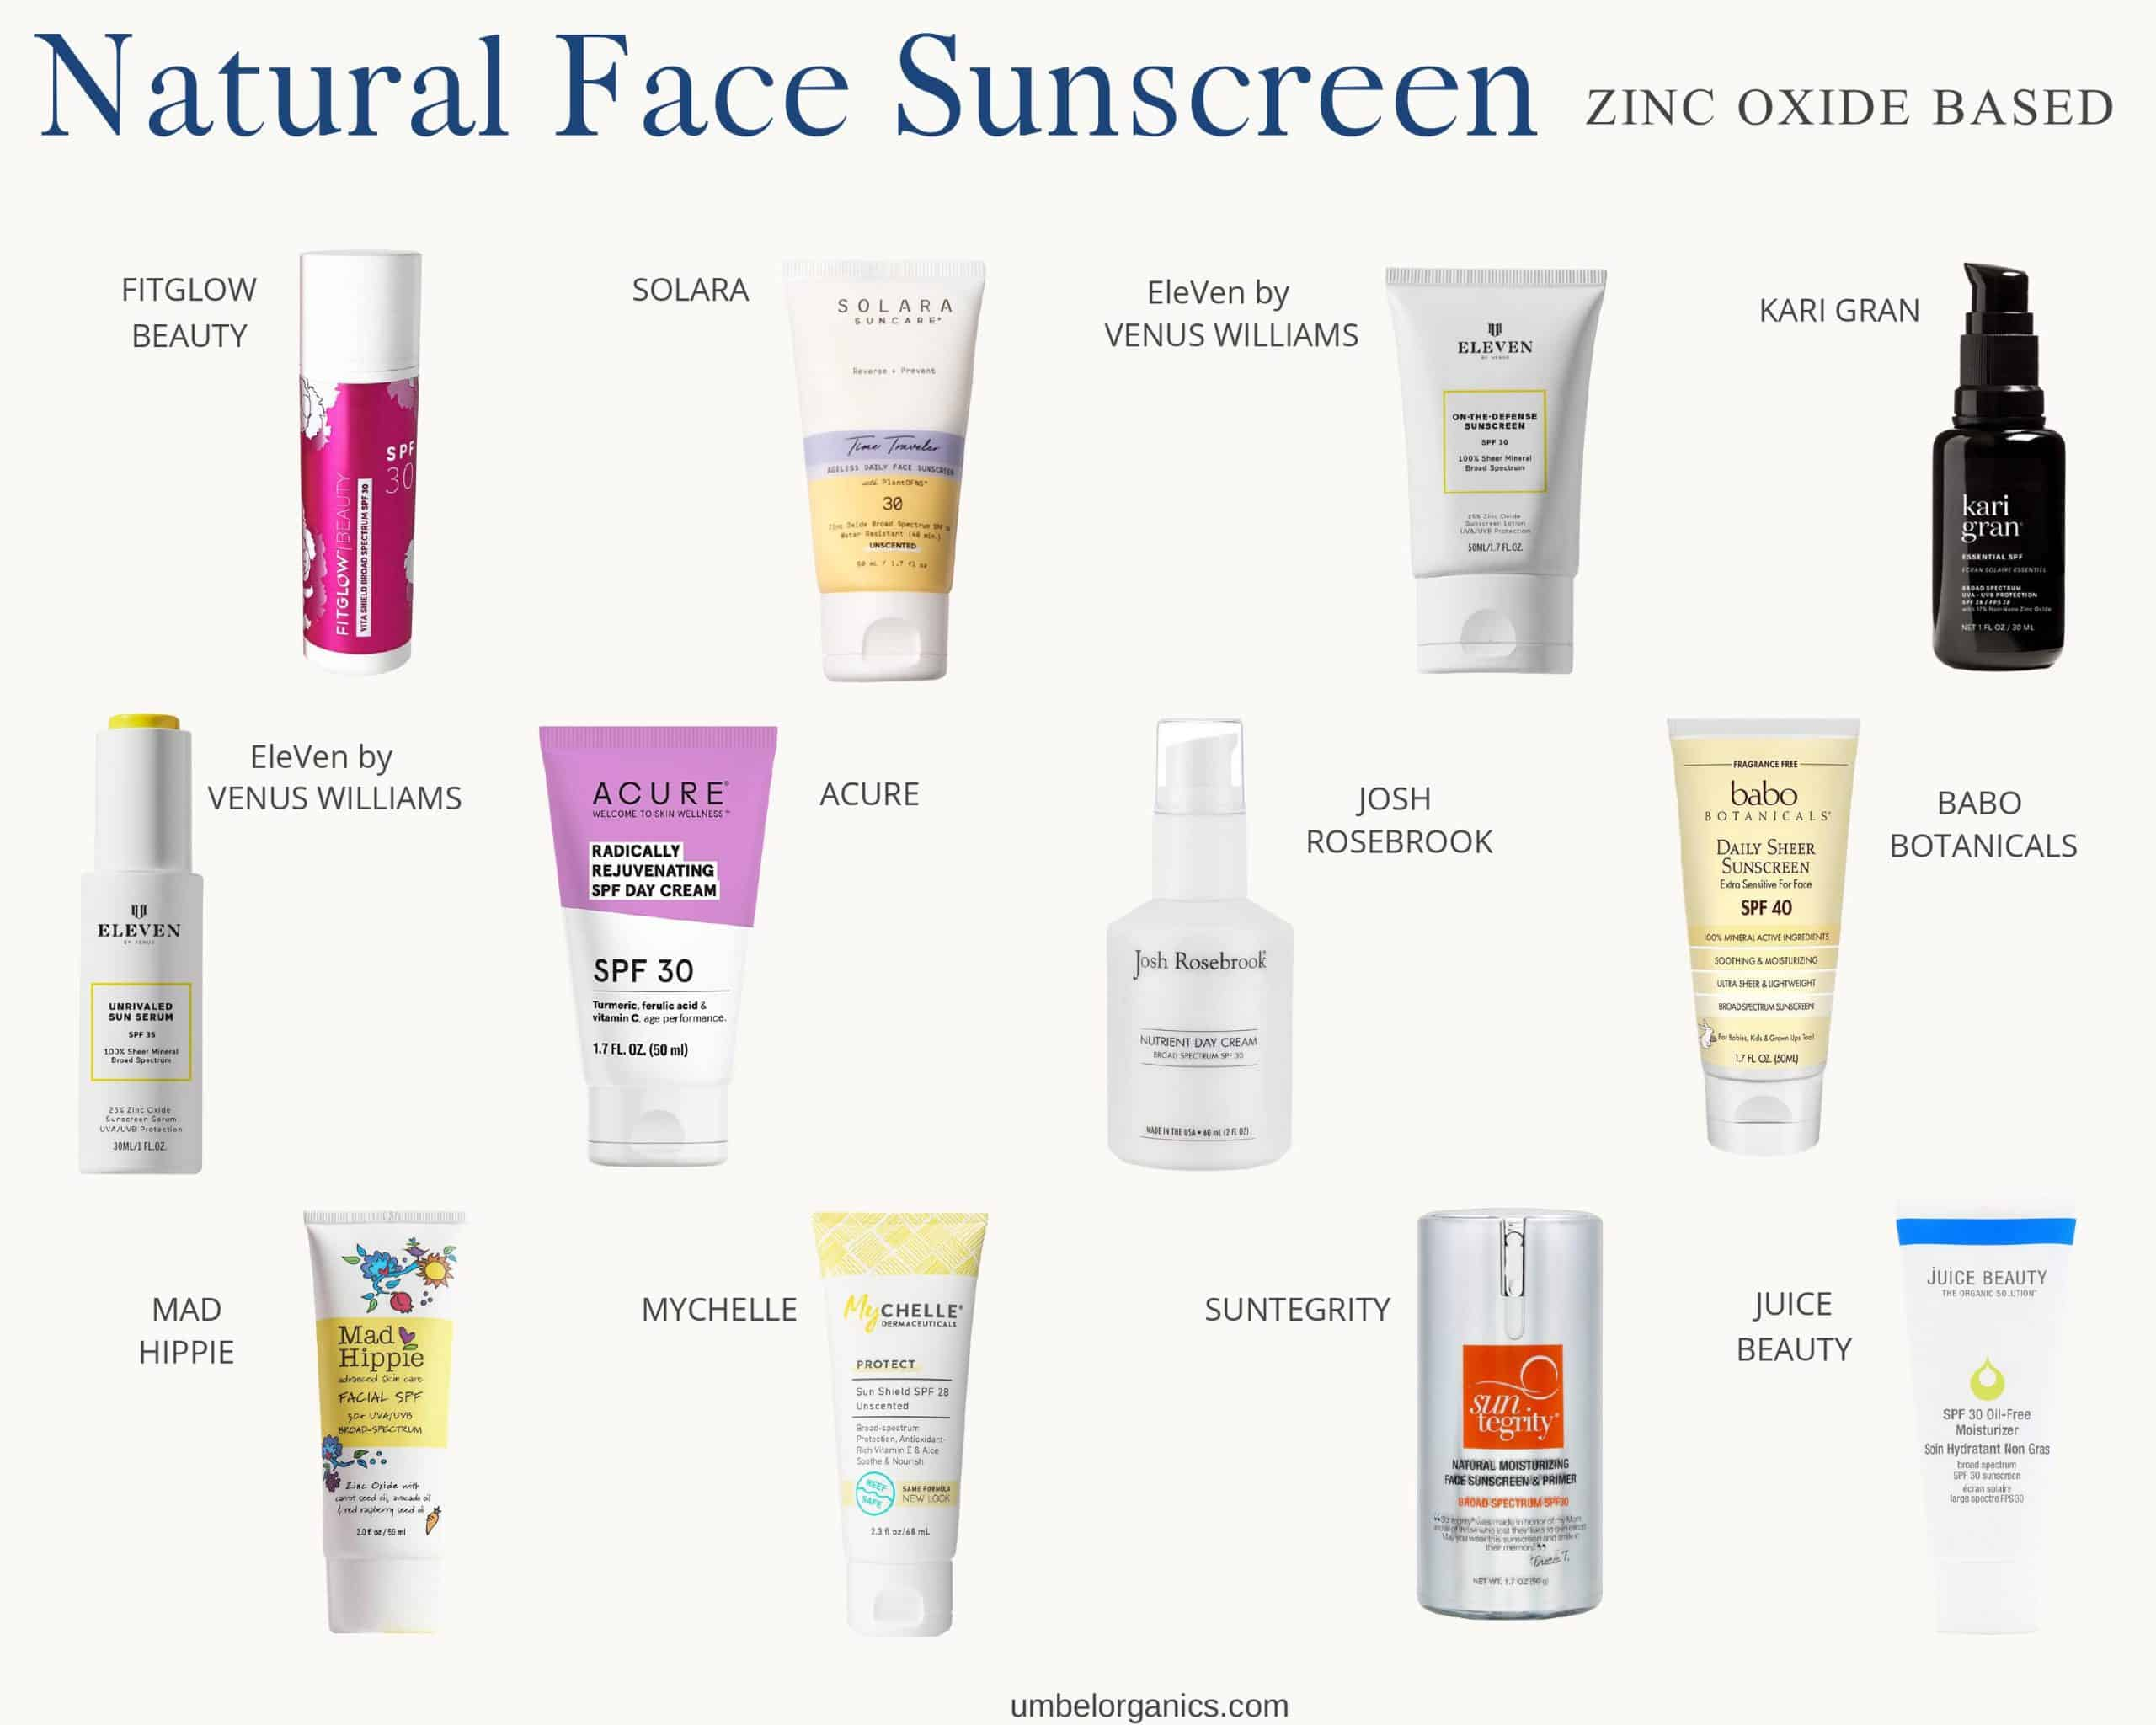 12 Brands of Natural Zinc Oxide Based Sunscreen Brands